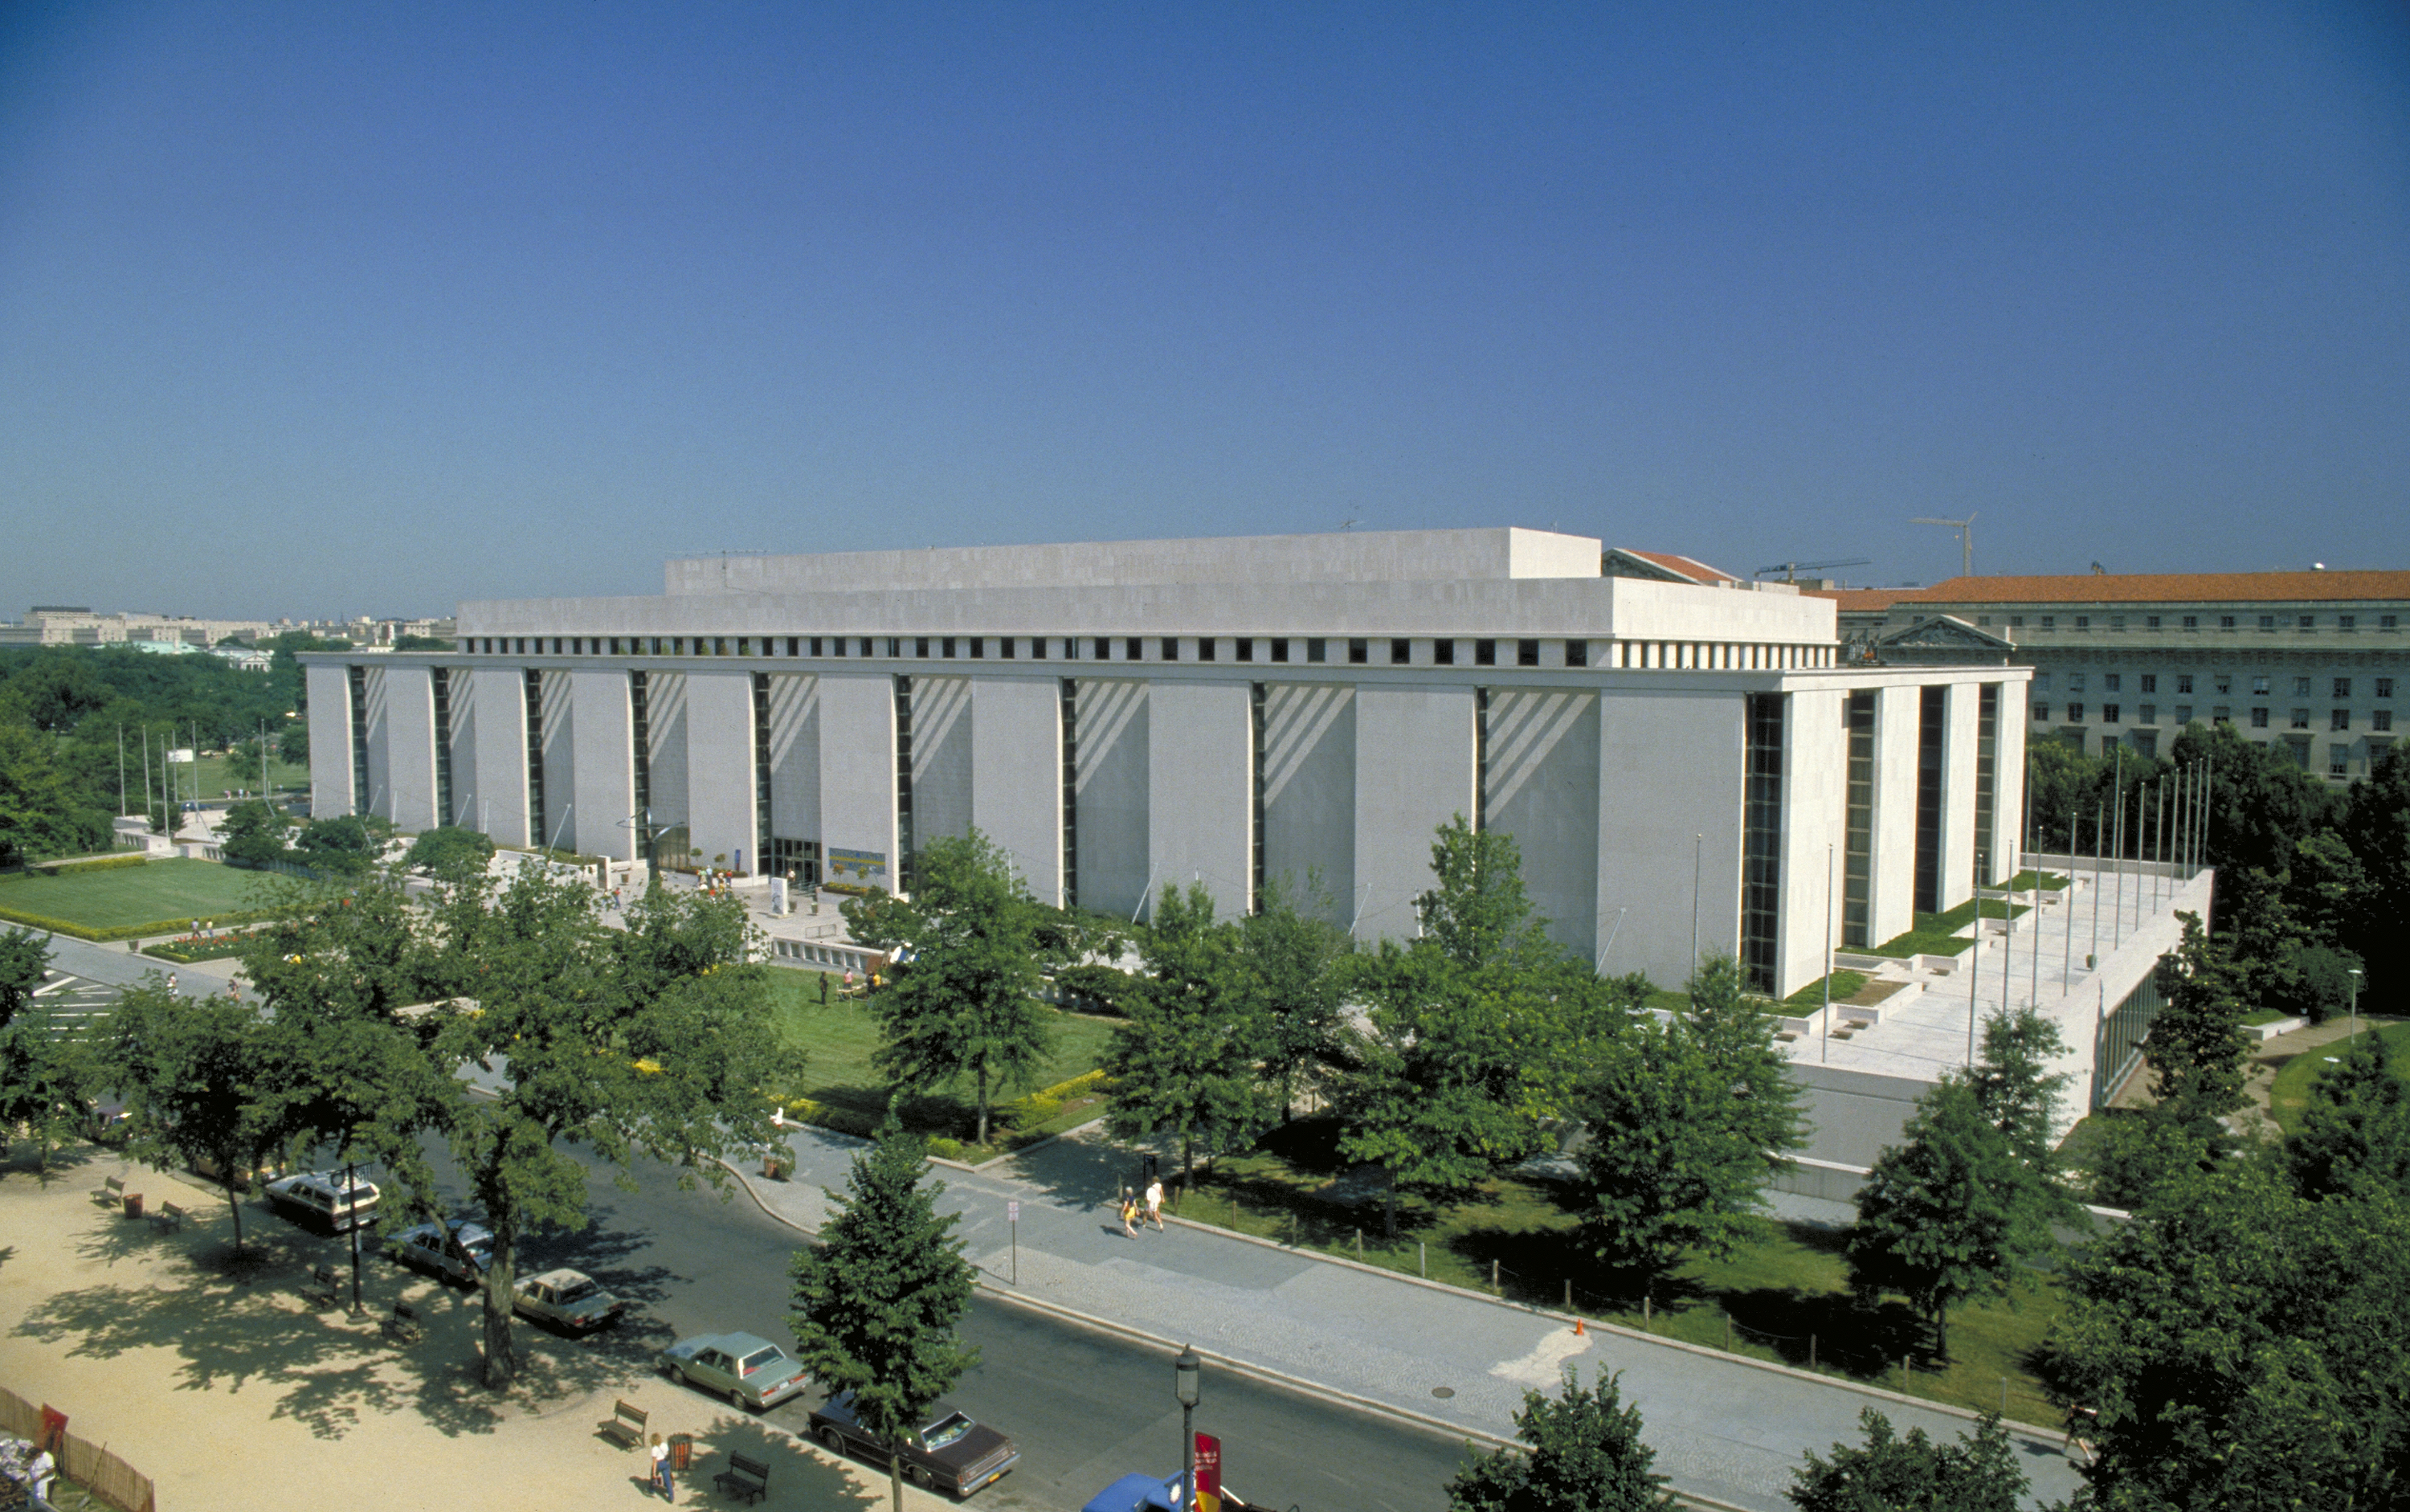 Exterior of American History Museum